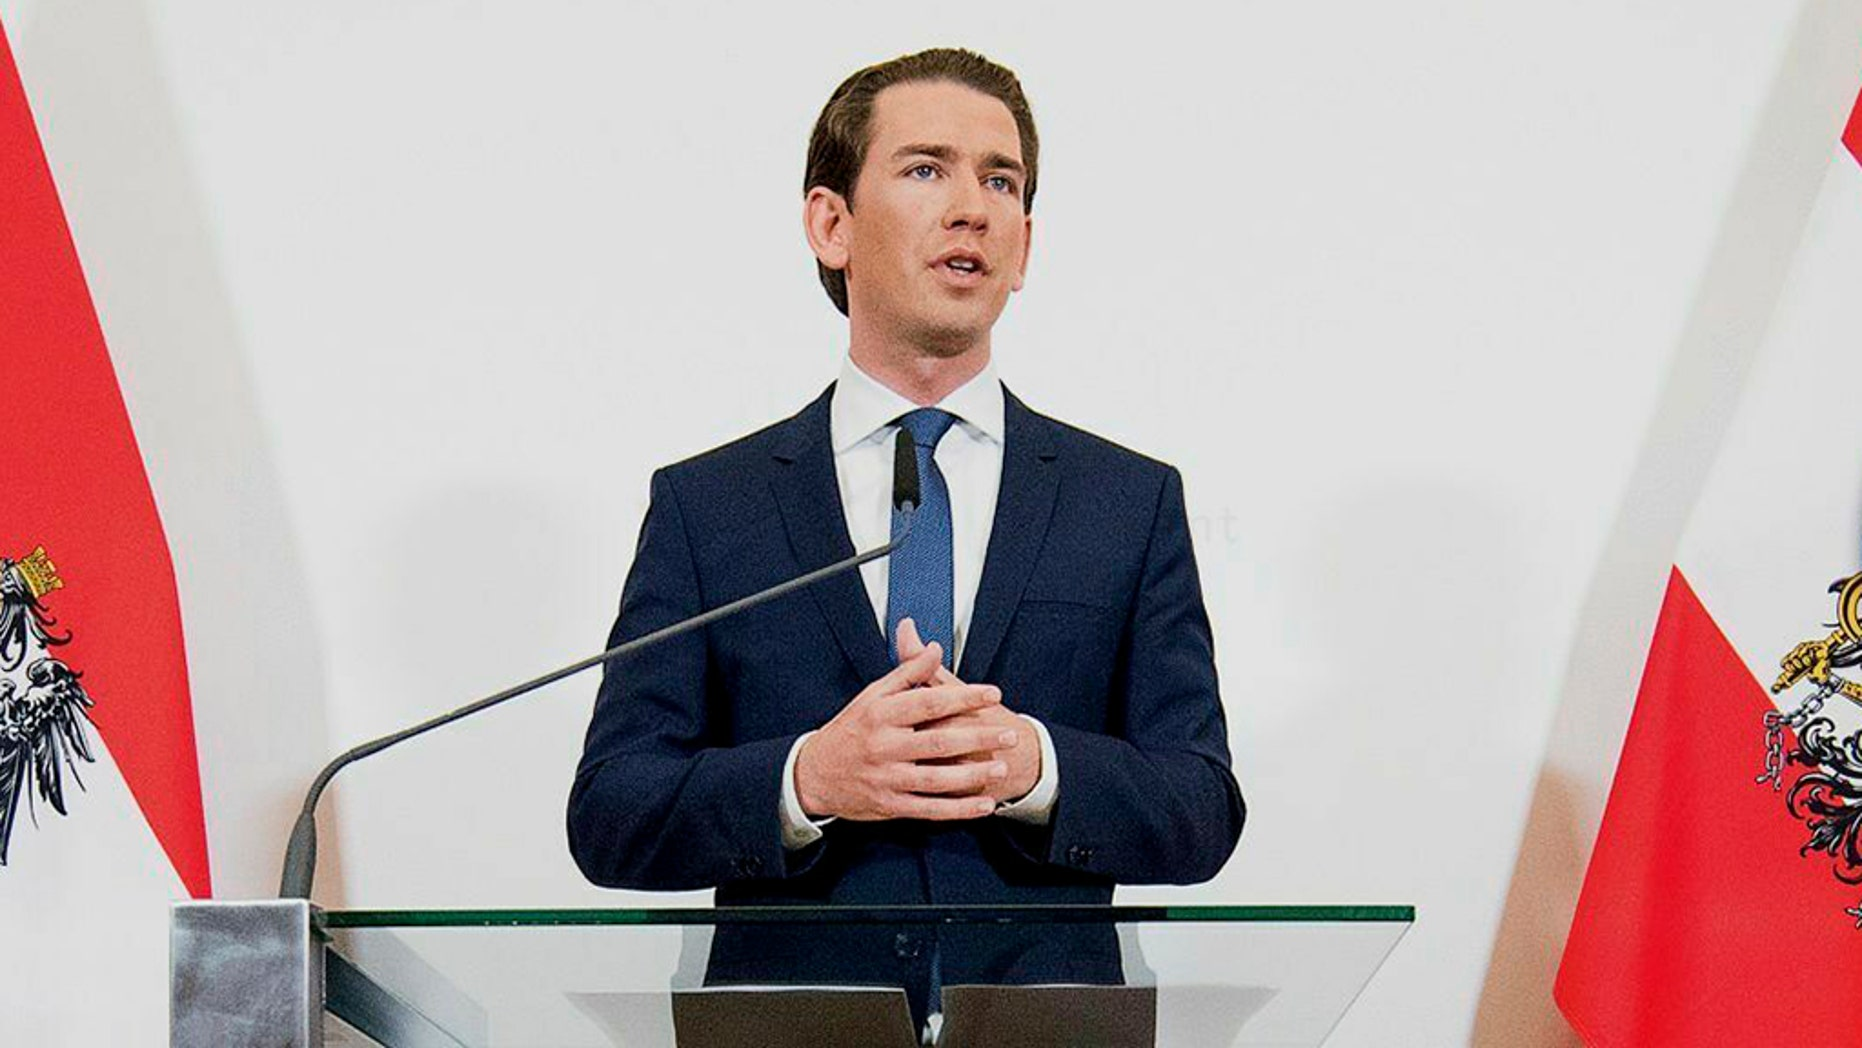 Austrian Chancellor Sebastian Kurz (Austrian People's Party) addresses the media during a press conference at the Federal Chancellors Office in Vienna on Saturday. Kurz has called for an early election after the resignation of his vice chancellor spelled an end to his governing coalition. (AP Photo/Michael Gruber)